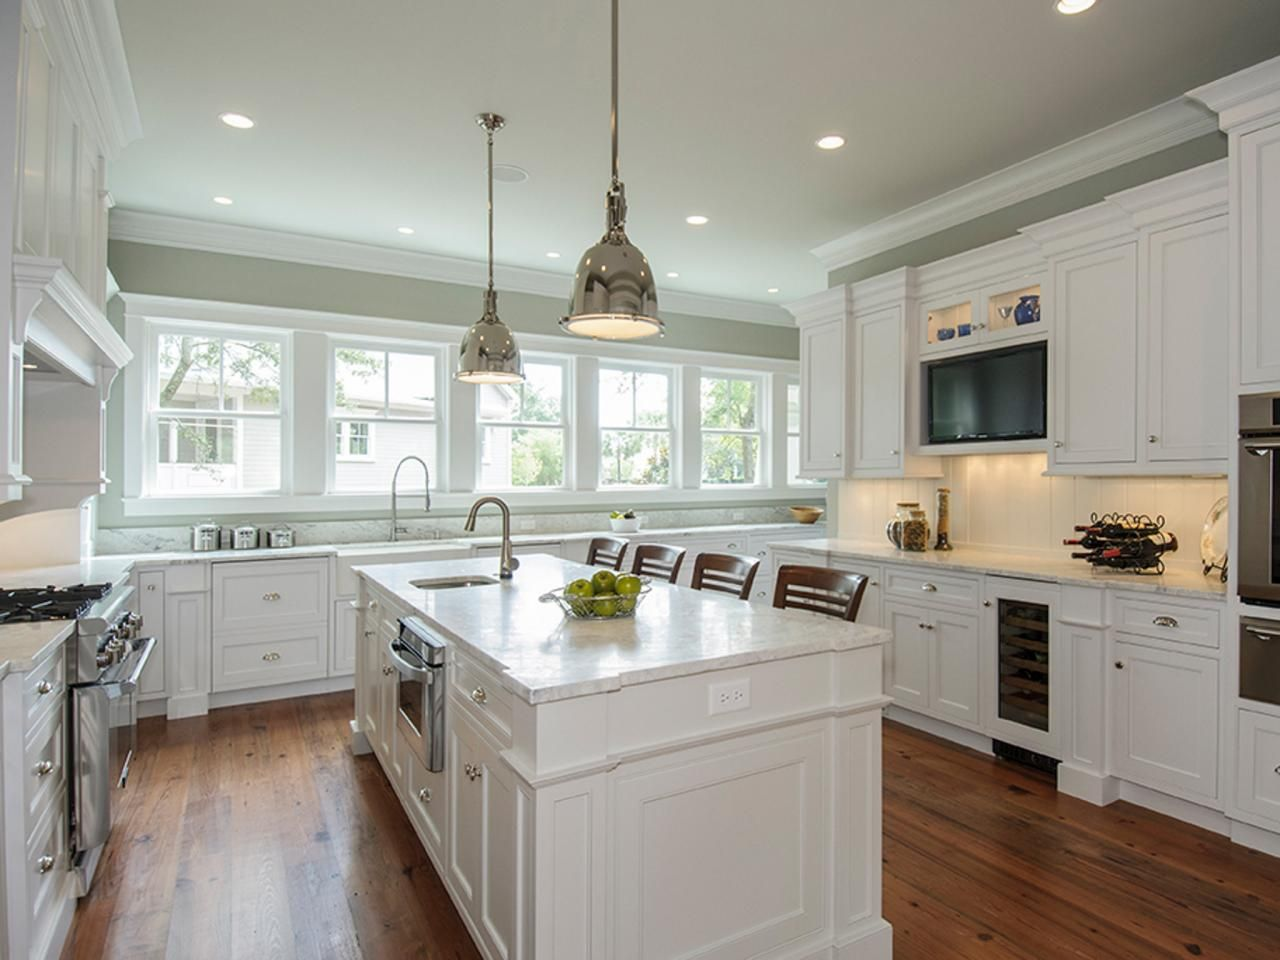 Painting Kitchen Cabinets Antique White Hgtv Pictures Ideas. Kitchens Lighting Ideas. Image for Lighting for The Kitchen 1069 Home Design Interior. 4 Ways To Get The Right Position for Kitchen Lighting Ideas Http